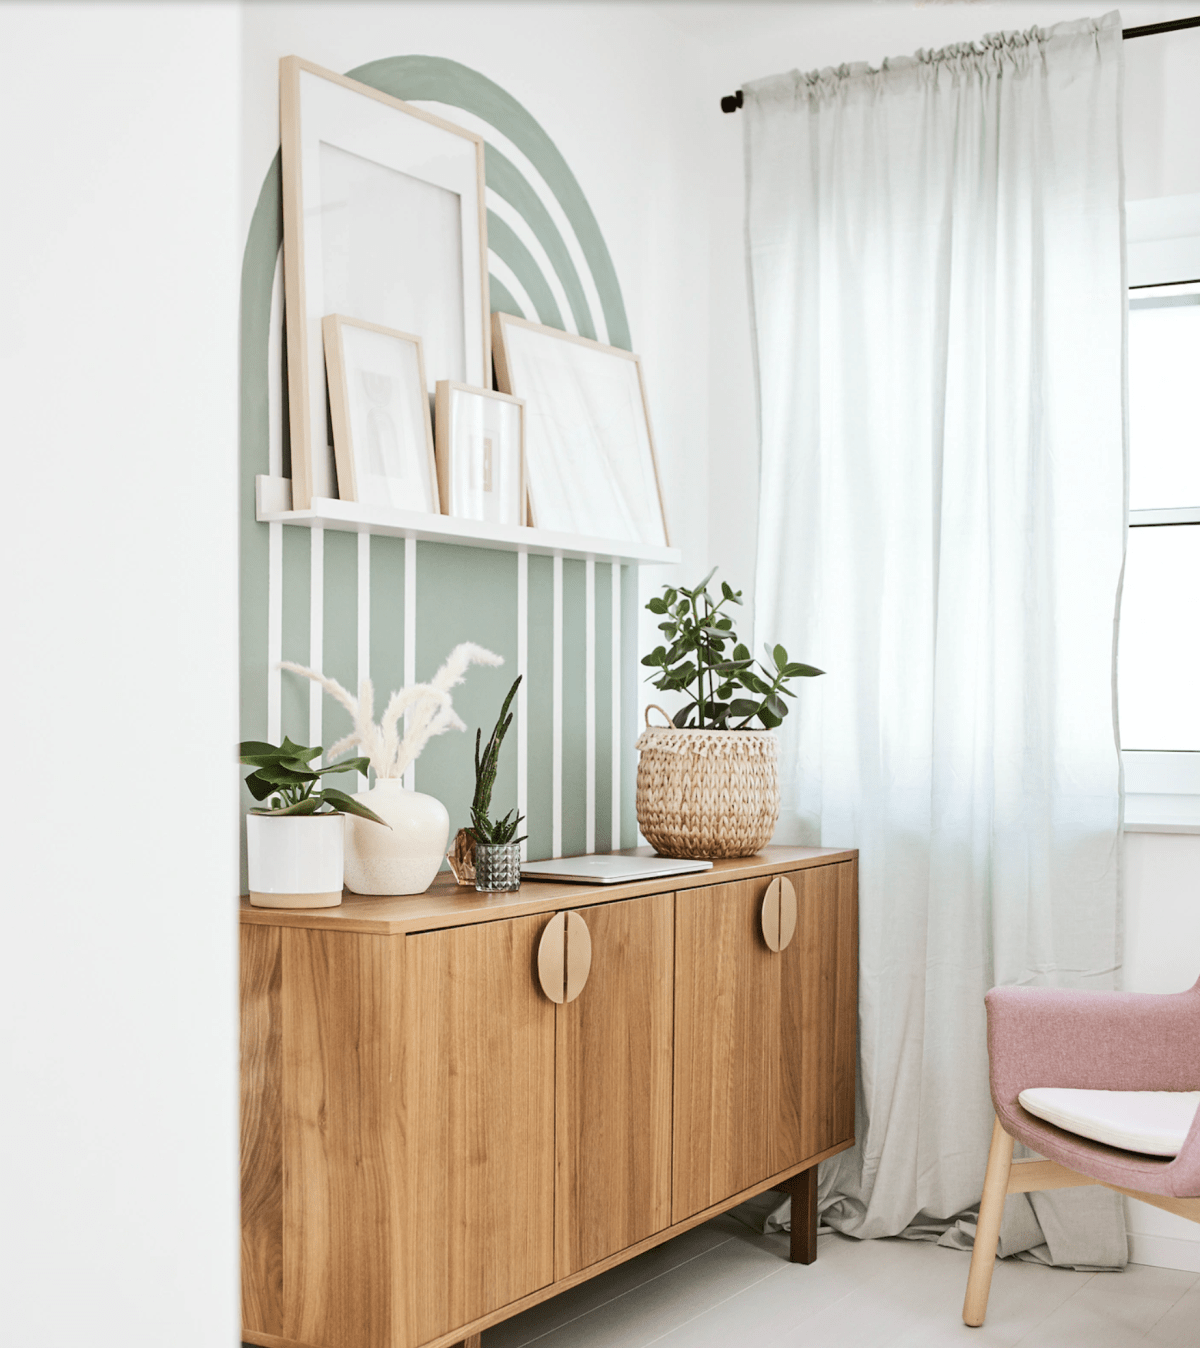 Ikea Hacks Easy Projects To Do This Weekend Real Homes